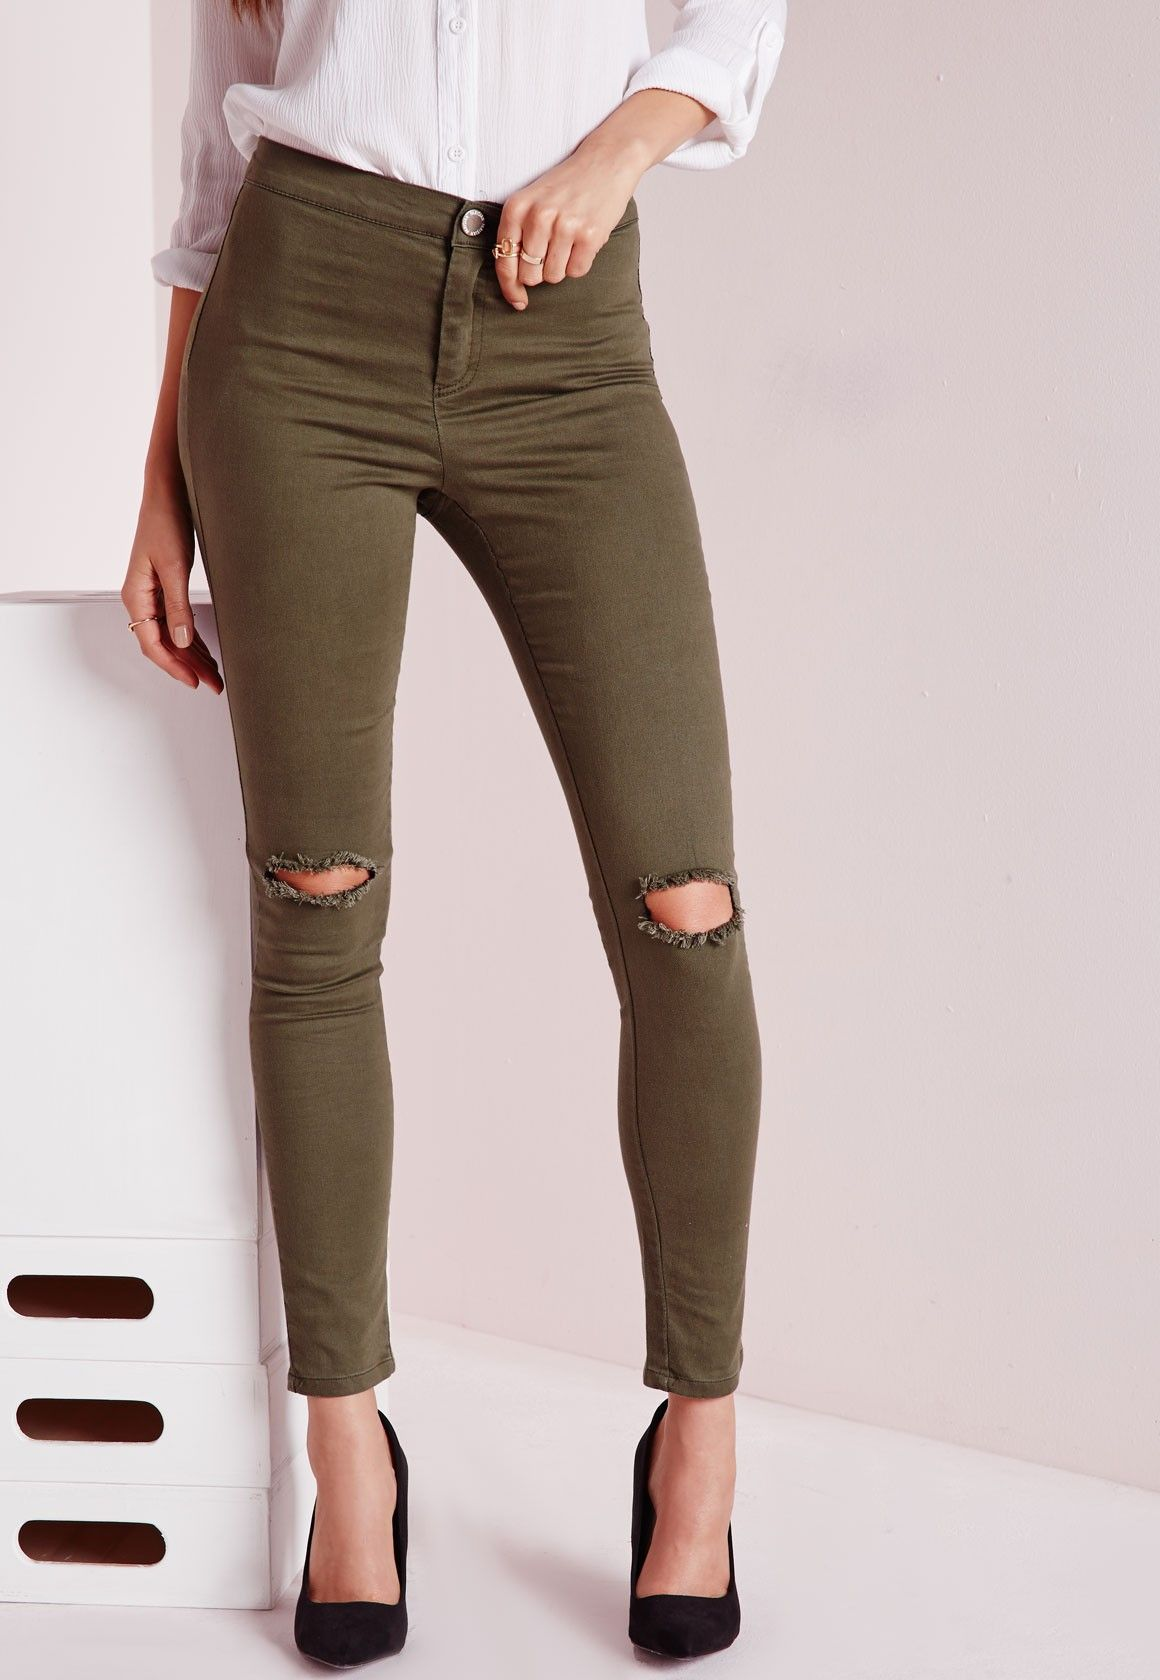 Lawless Mid Rise Ripped Knee Jegging Khaki - Denim - Jeans - Missguided